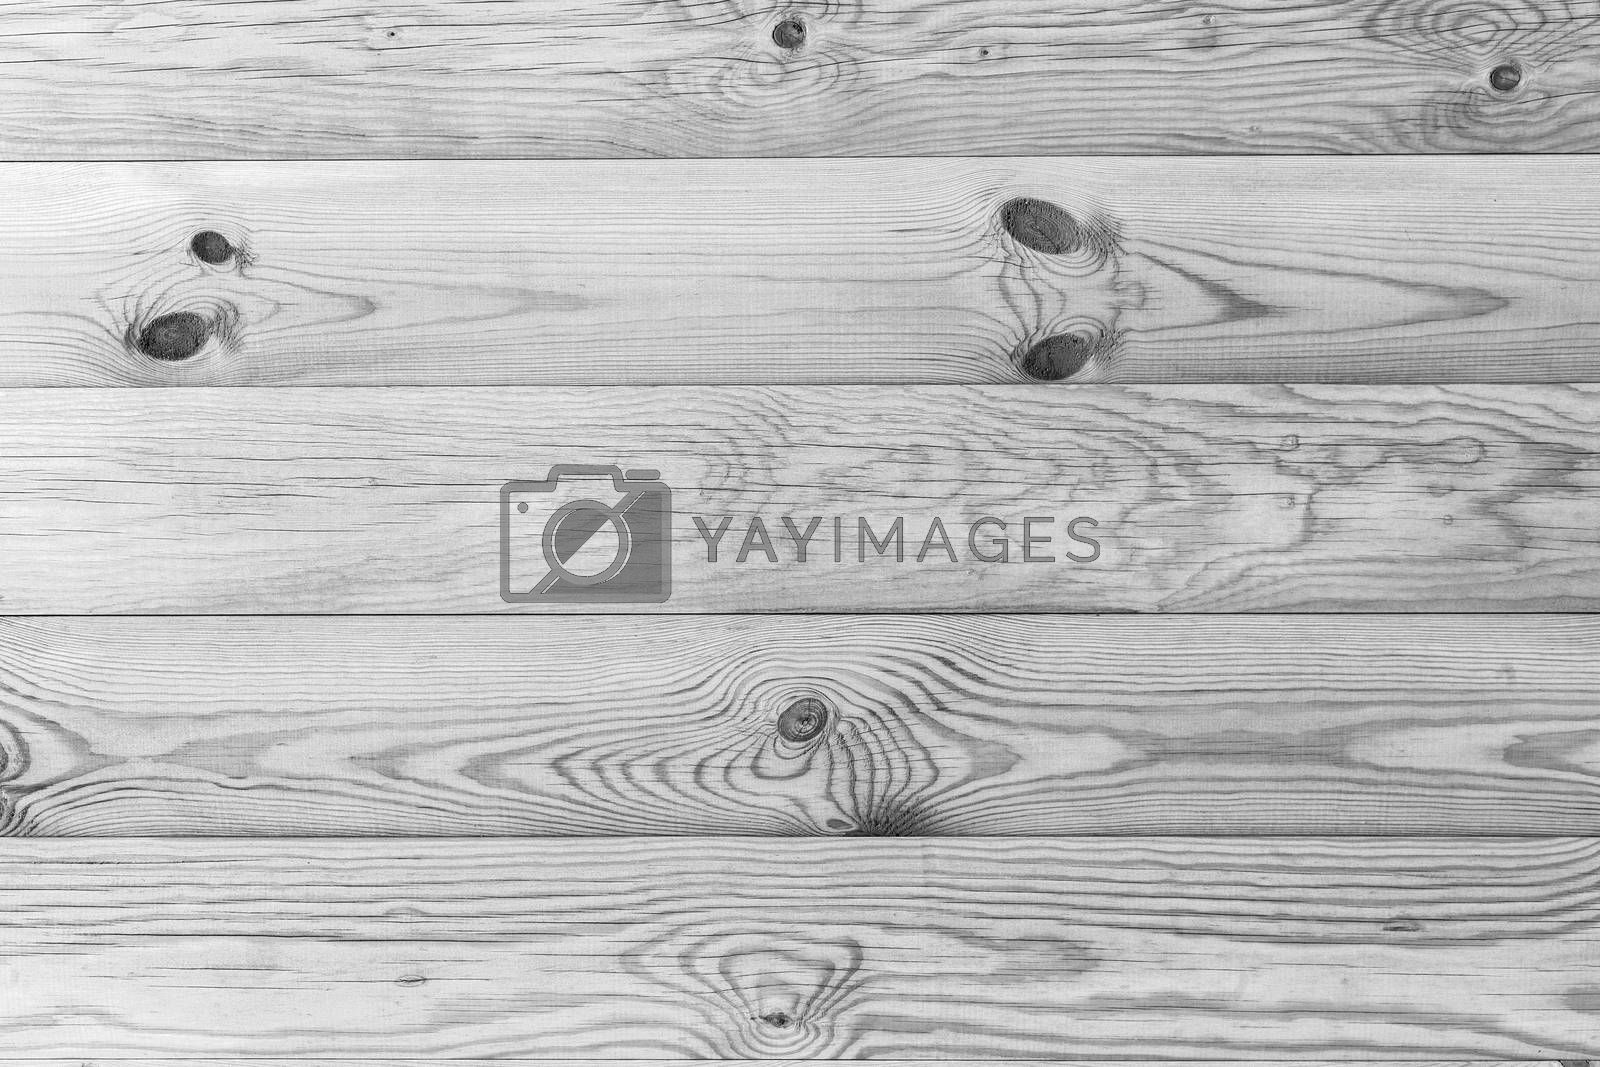 It is a conceptual or metaphor wall banner, grunge, material,